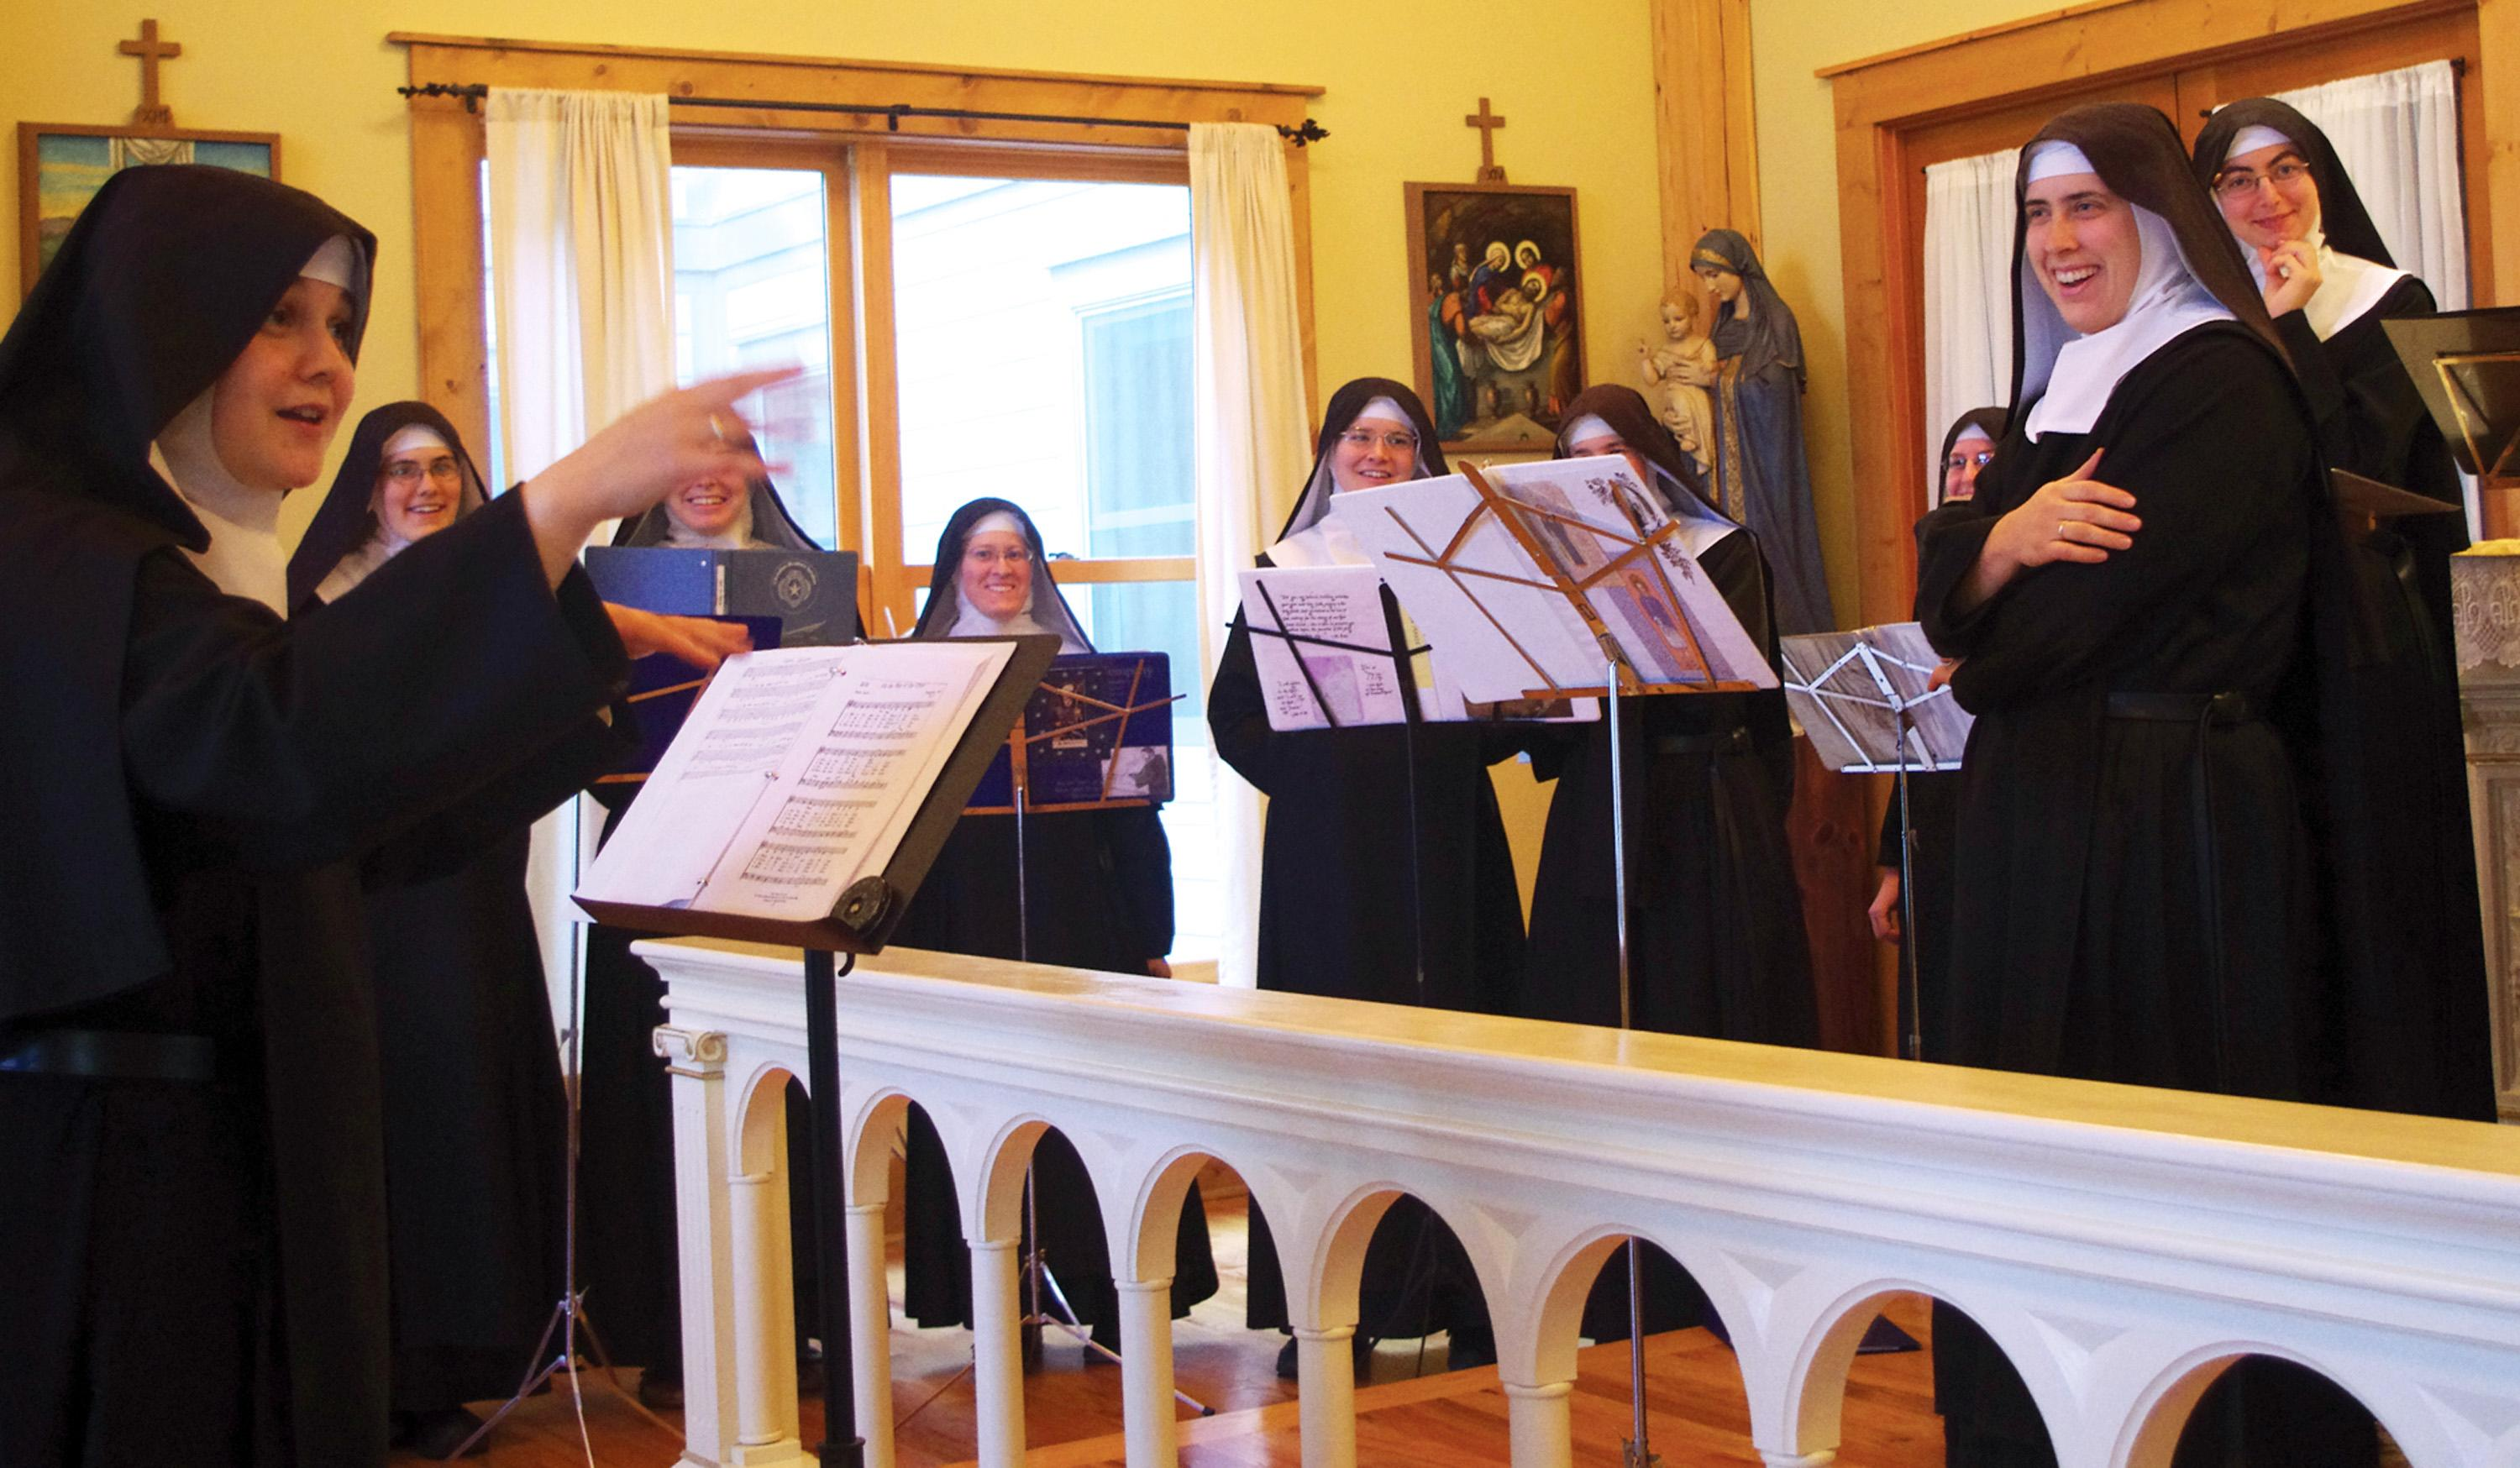 """In this Nov. 18, 2013 photo provided by De Montfort Music, Mother Cecilia, left, conducts the Sisters during the recording sessions for """"Lent at Ephesus"""" in the chapel at the Priory of The Benedictines of Mary called """"Ephesus"""" near Gower, Mo. The Benedictines of Mary were named Billboard's Top Traditional Classical Album Artist of 2013, for the second year in a row. Their new album, """"Lent At Ephesus,"""" was released Feb. 11 on the Decca/De Montfort Music label. (AP Photo/Courtesy De Montfort Music)"""